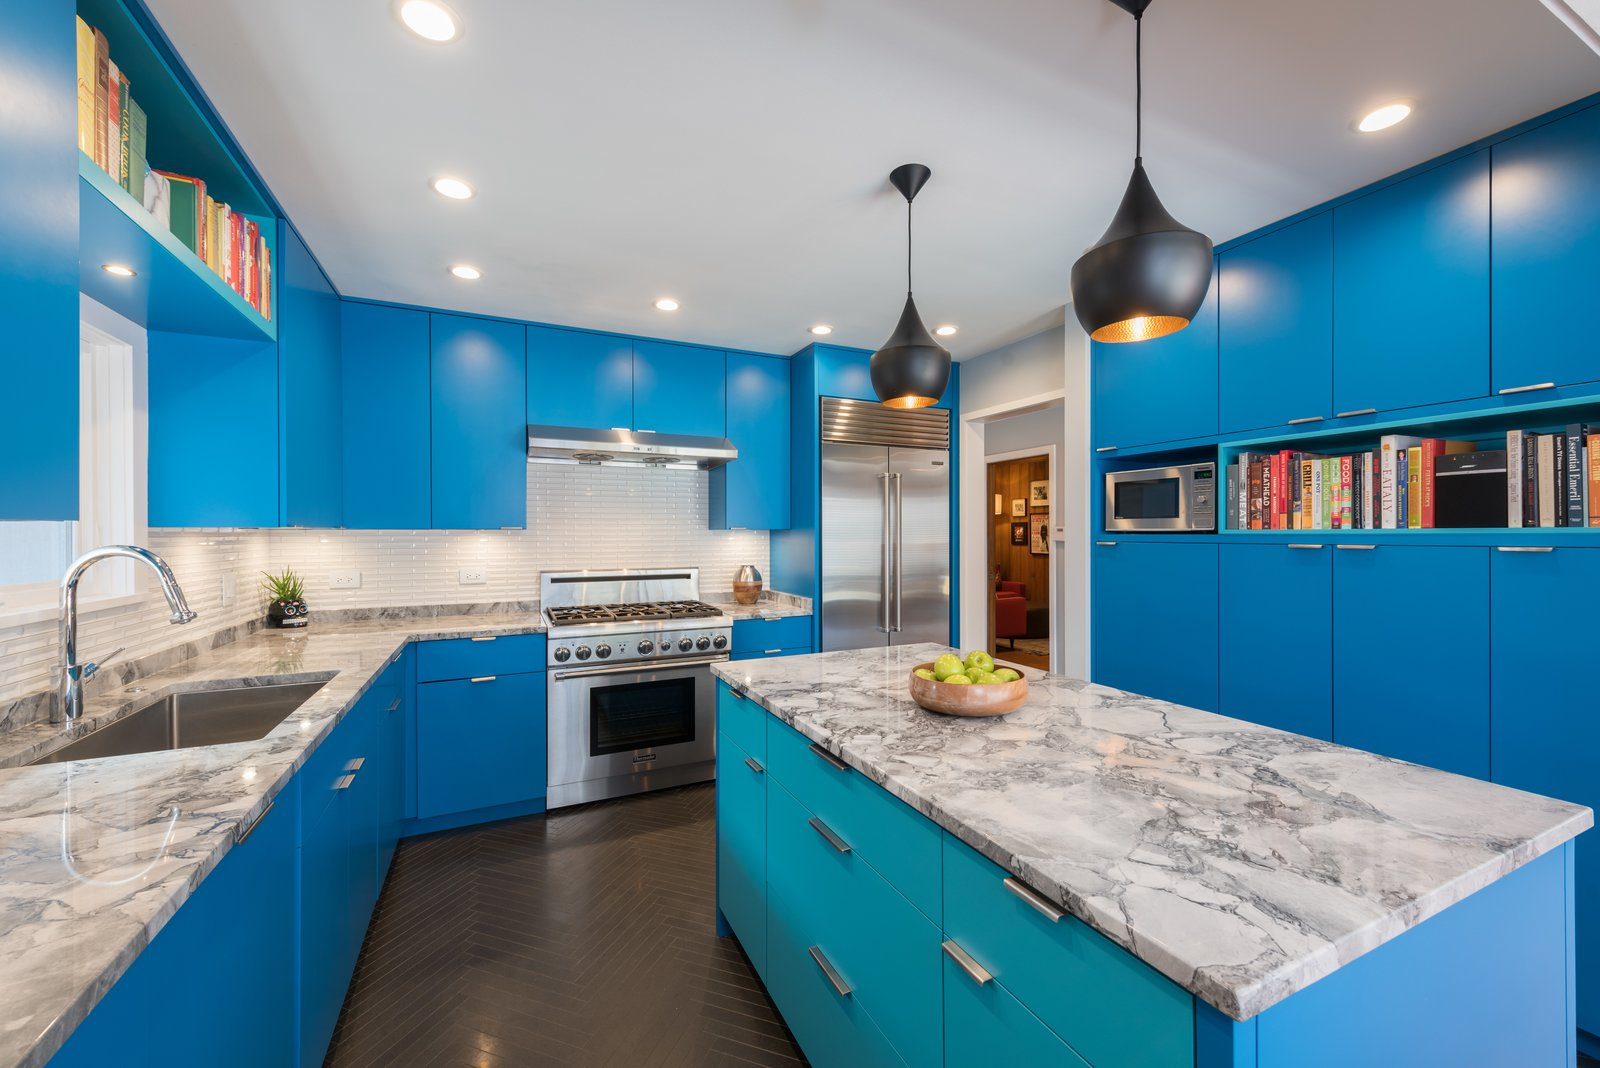 Kitchen, Limestone, Colorful, and Pendant Located in Park Ridge, Illinois, this kitchen renovation gives new life to a midcentury that has been passed down through generations.  Kitchen Limestone Colorful Pendant Photos from Beauty in Blue Park Ridge